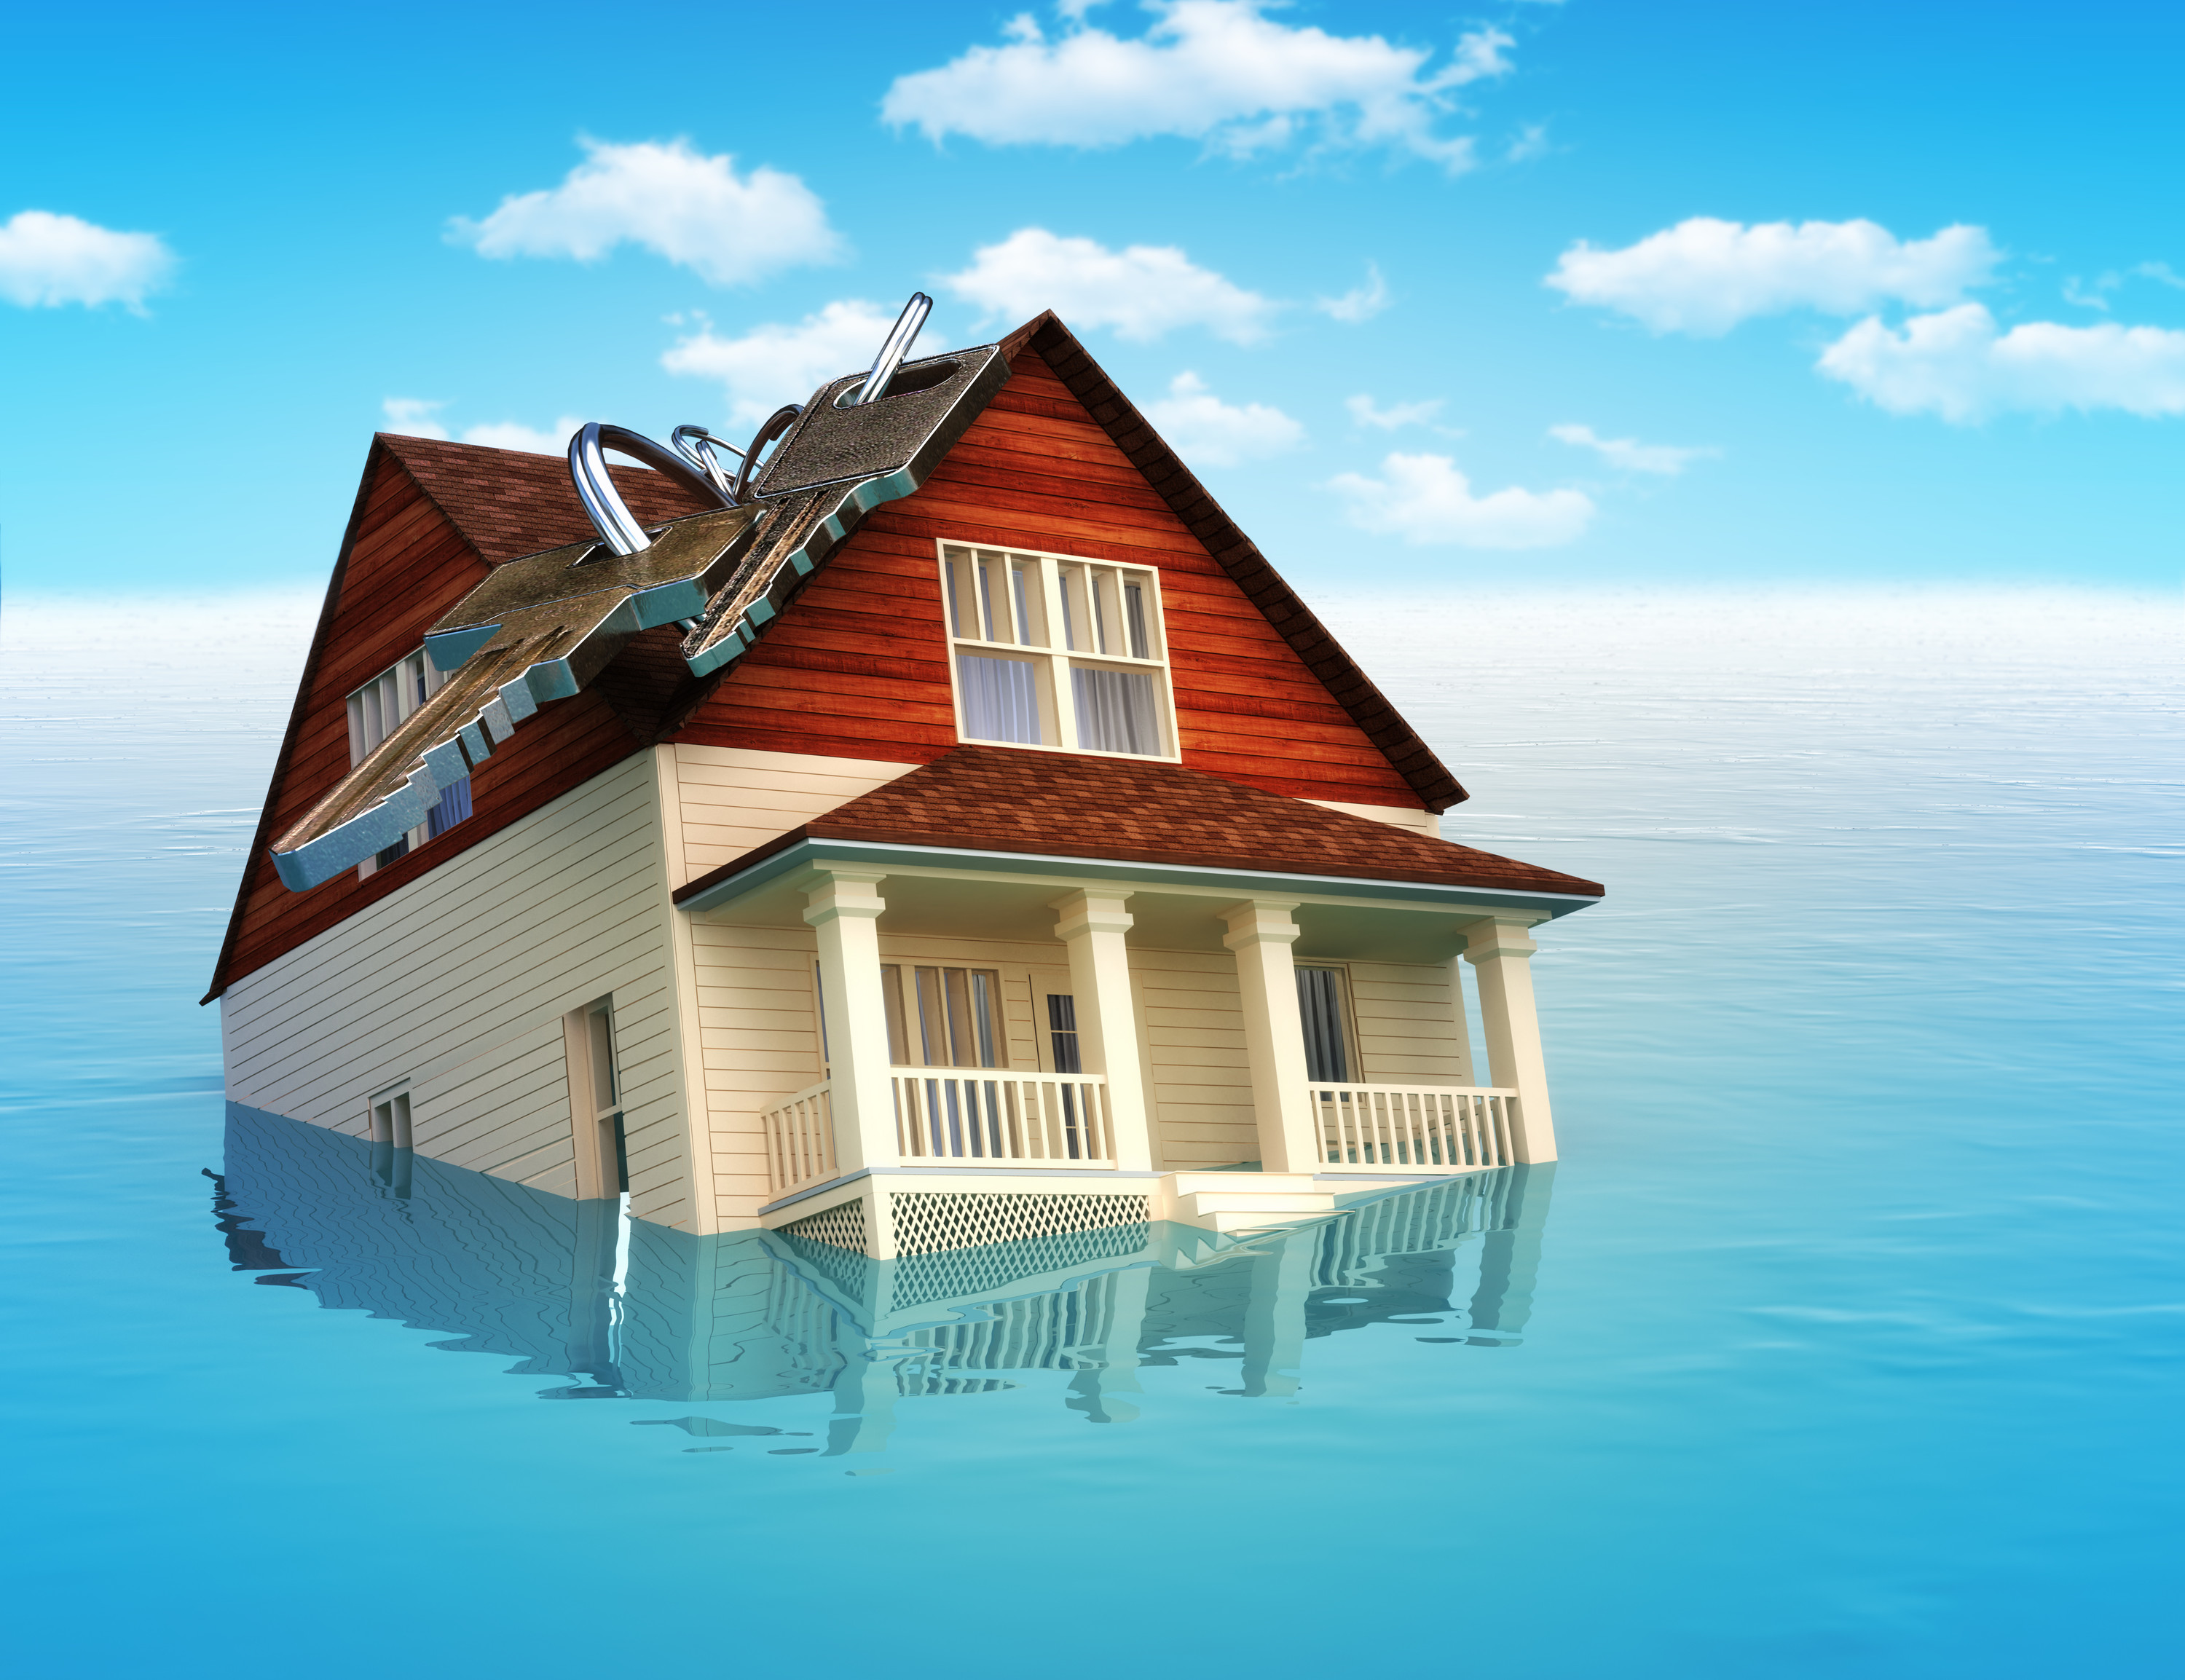 8 Steps To Minimize Damage From Water